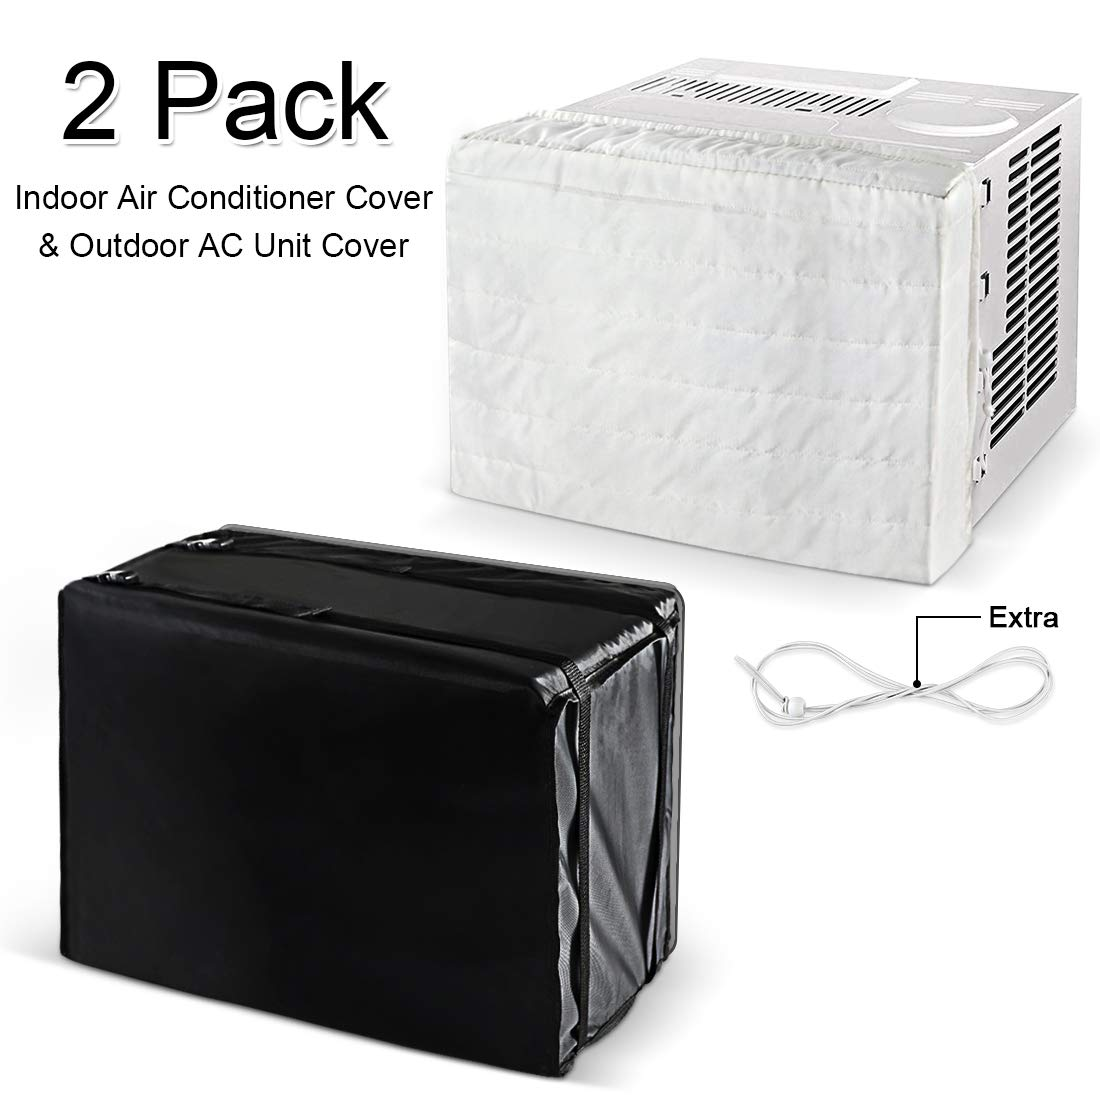 """LadyRosian Indoor Outdoor Window Air Conditioner Cover Combination, Waterproof Air Conditioner Unit Cover, Air Conditioner Defender, Black & White, 20.8"""" x 3.5"""" x 13.5"""" + 21.8"""" x 15"""" x 16"""""""